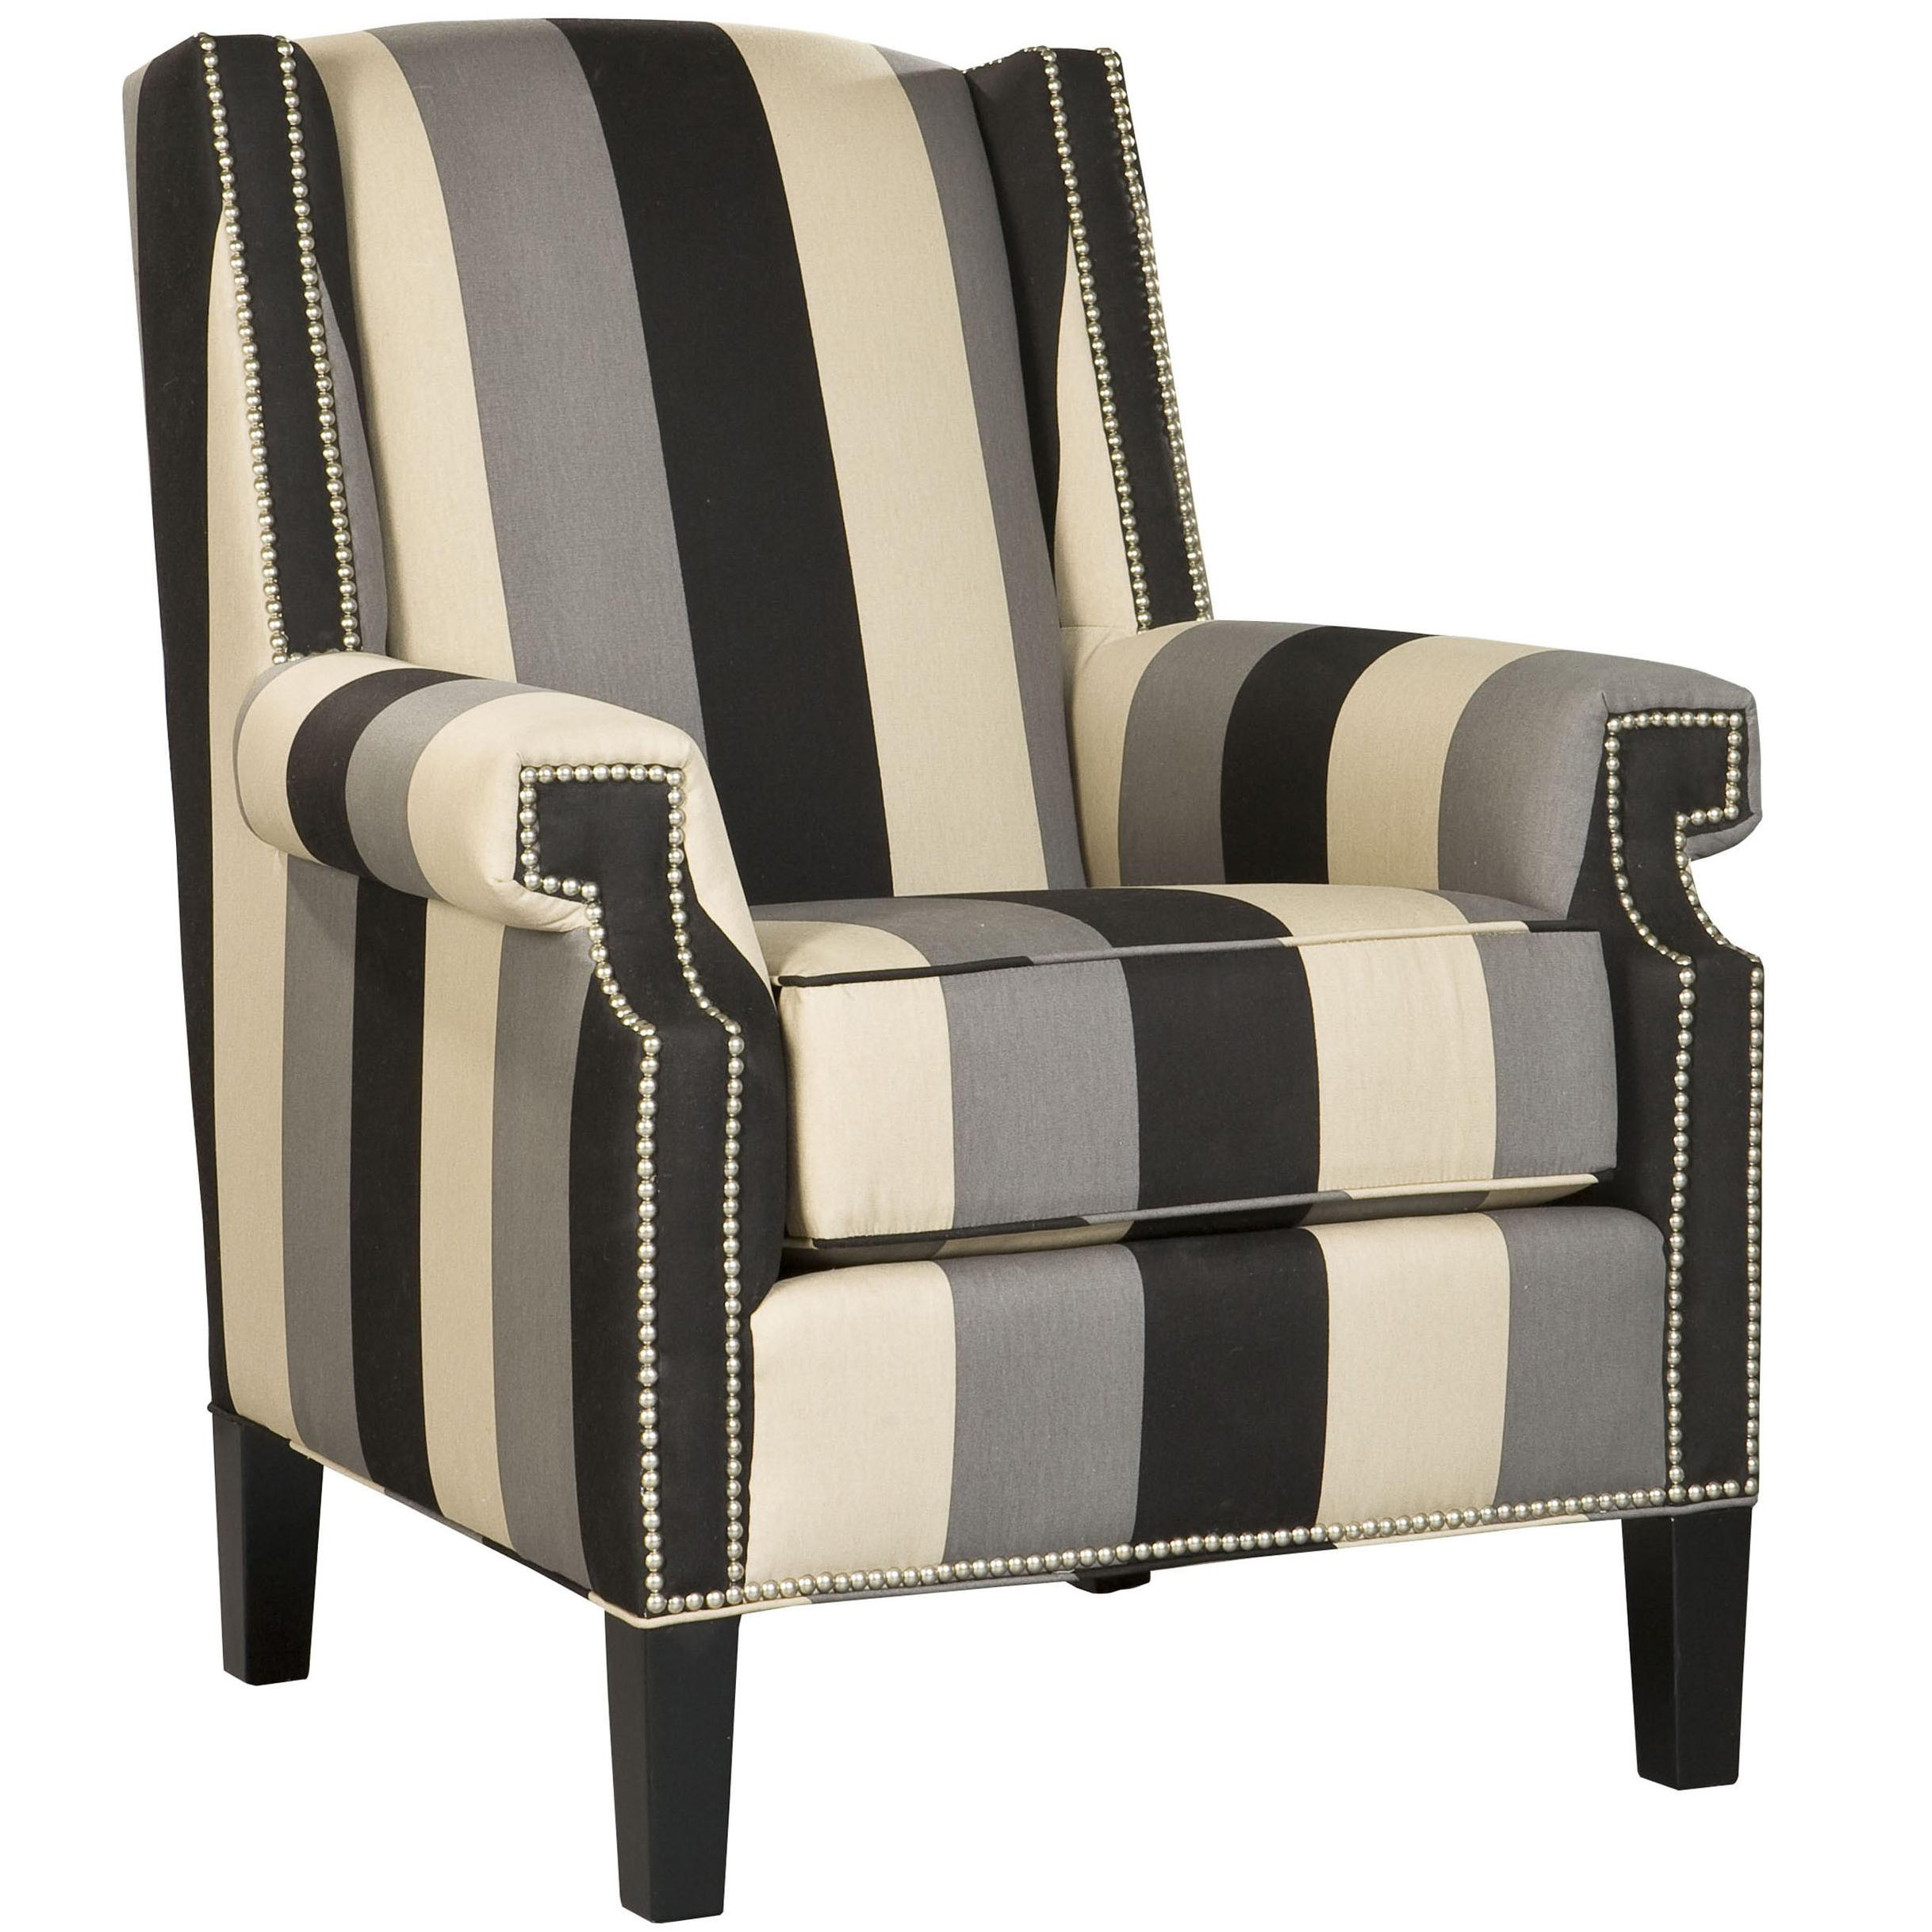 Rodman Contempary Accent Chair by Hekman at Sprintz Furniture